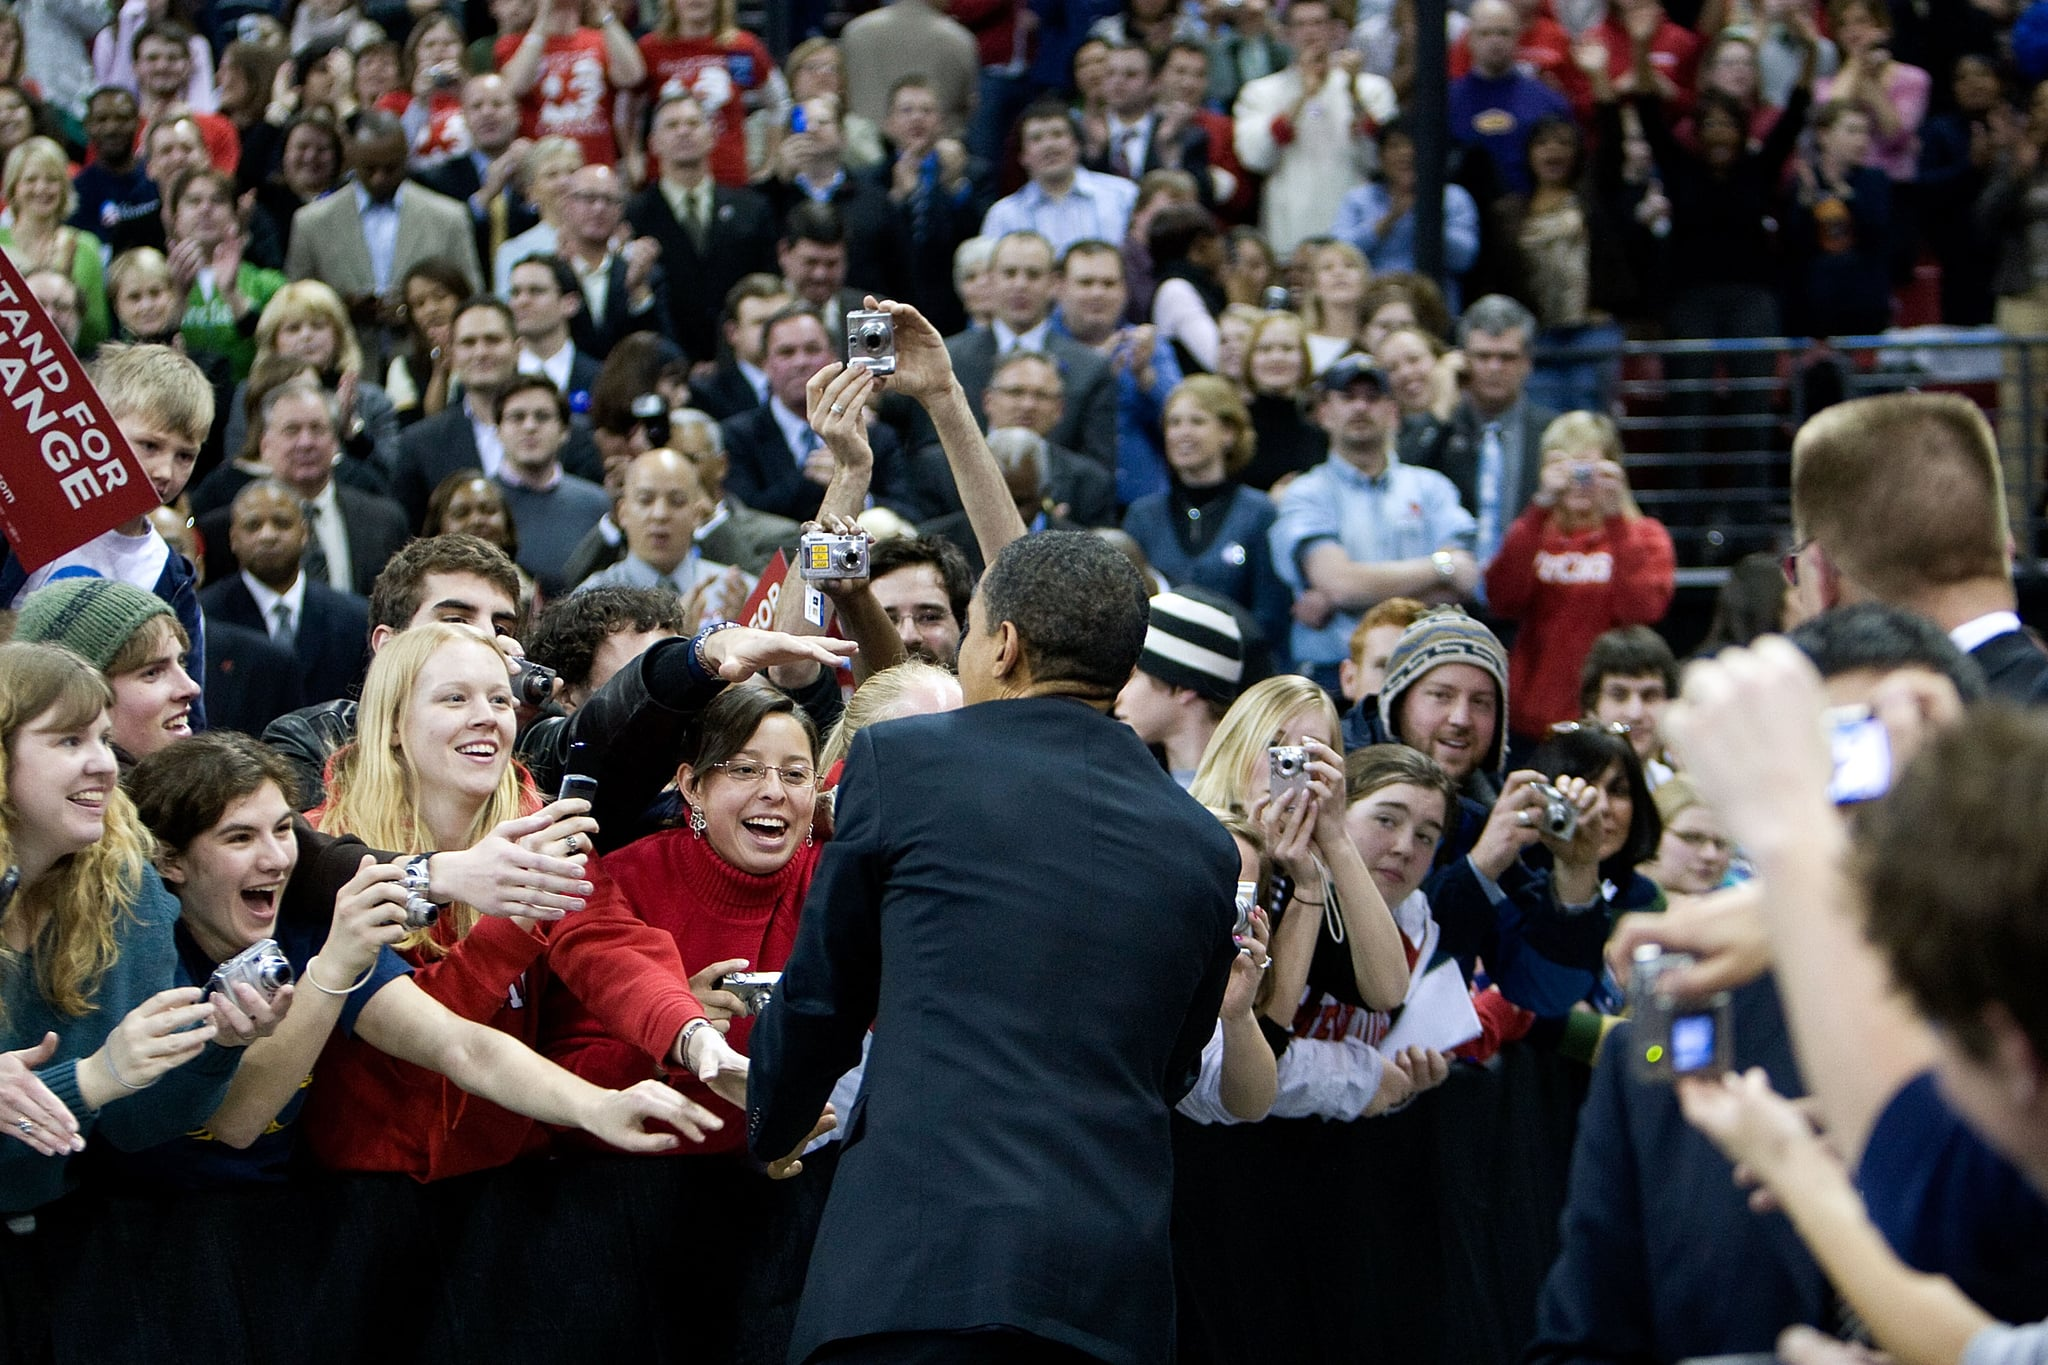 Last week Obama attended a rally at the University of Wisconsin. Trying to get out the youth vote!